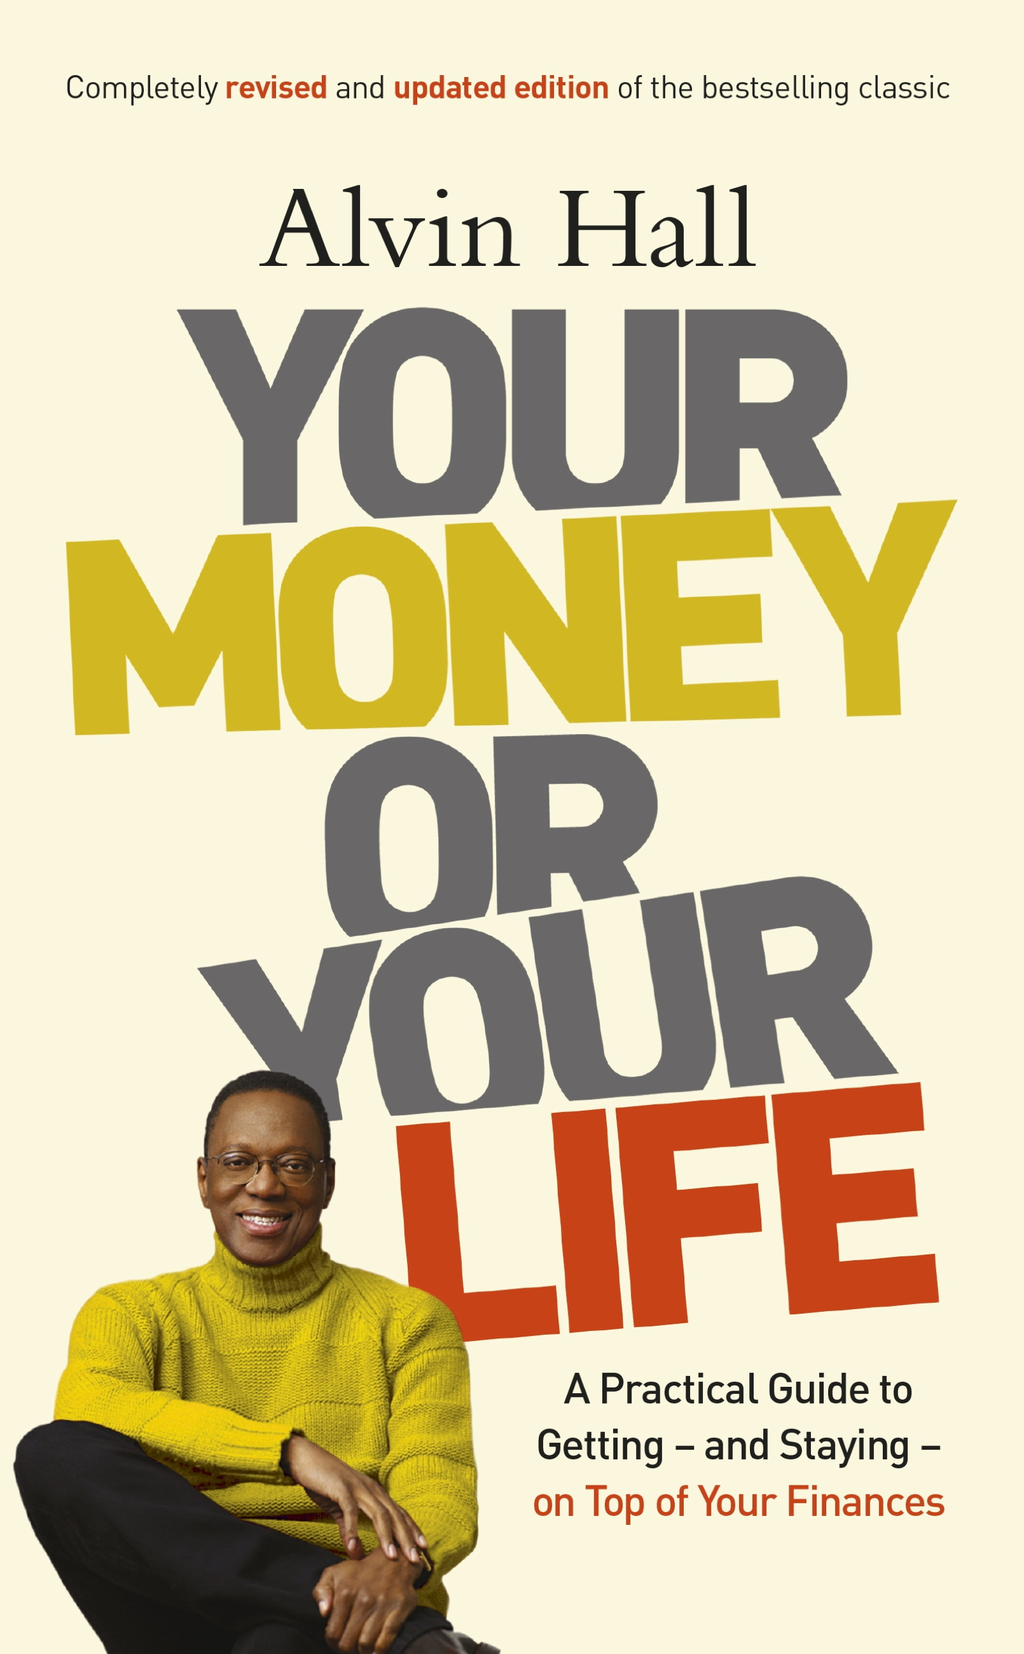 Your Money or Your Life A Practical Guide to Getting - and Staying - on Top of Your Finances